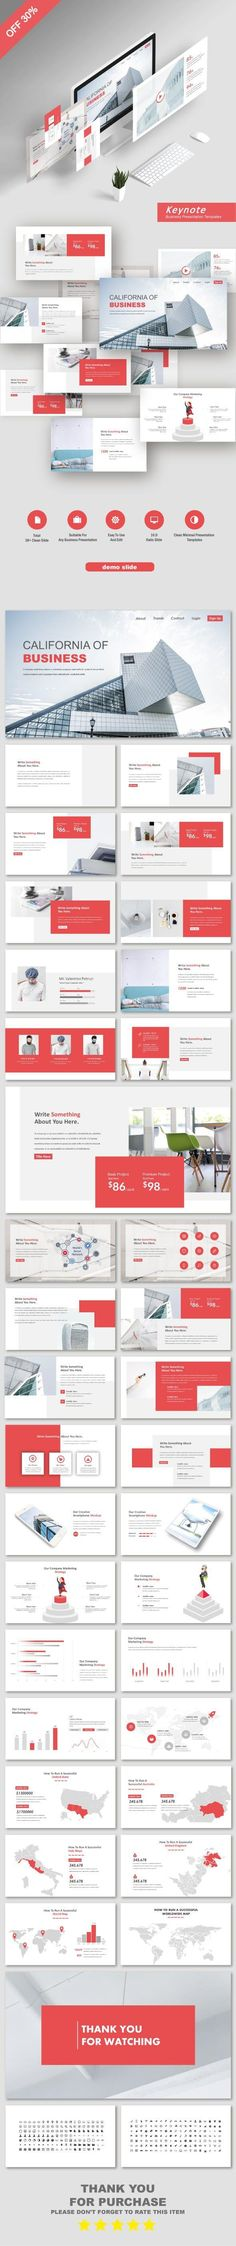 PitchDeck Business PowerPoint Templates Business Presentation by CreatorTemplate. Business Presentation Templates, Business Powerpoint Templates, Presentation Slides, Presentation Design, Keynote Template, Color Change, Infographic, Social Media, Marketing